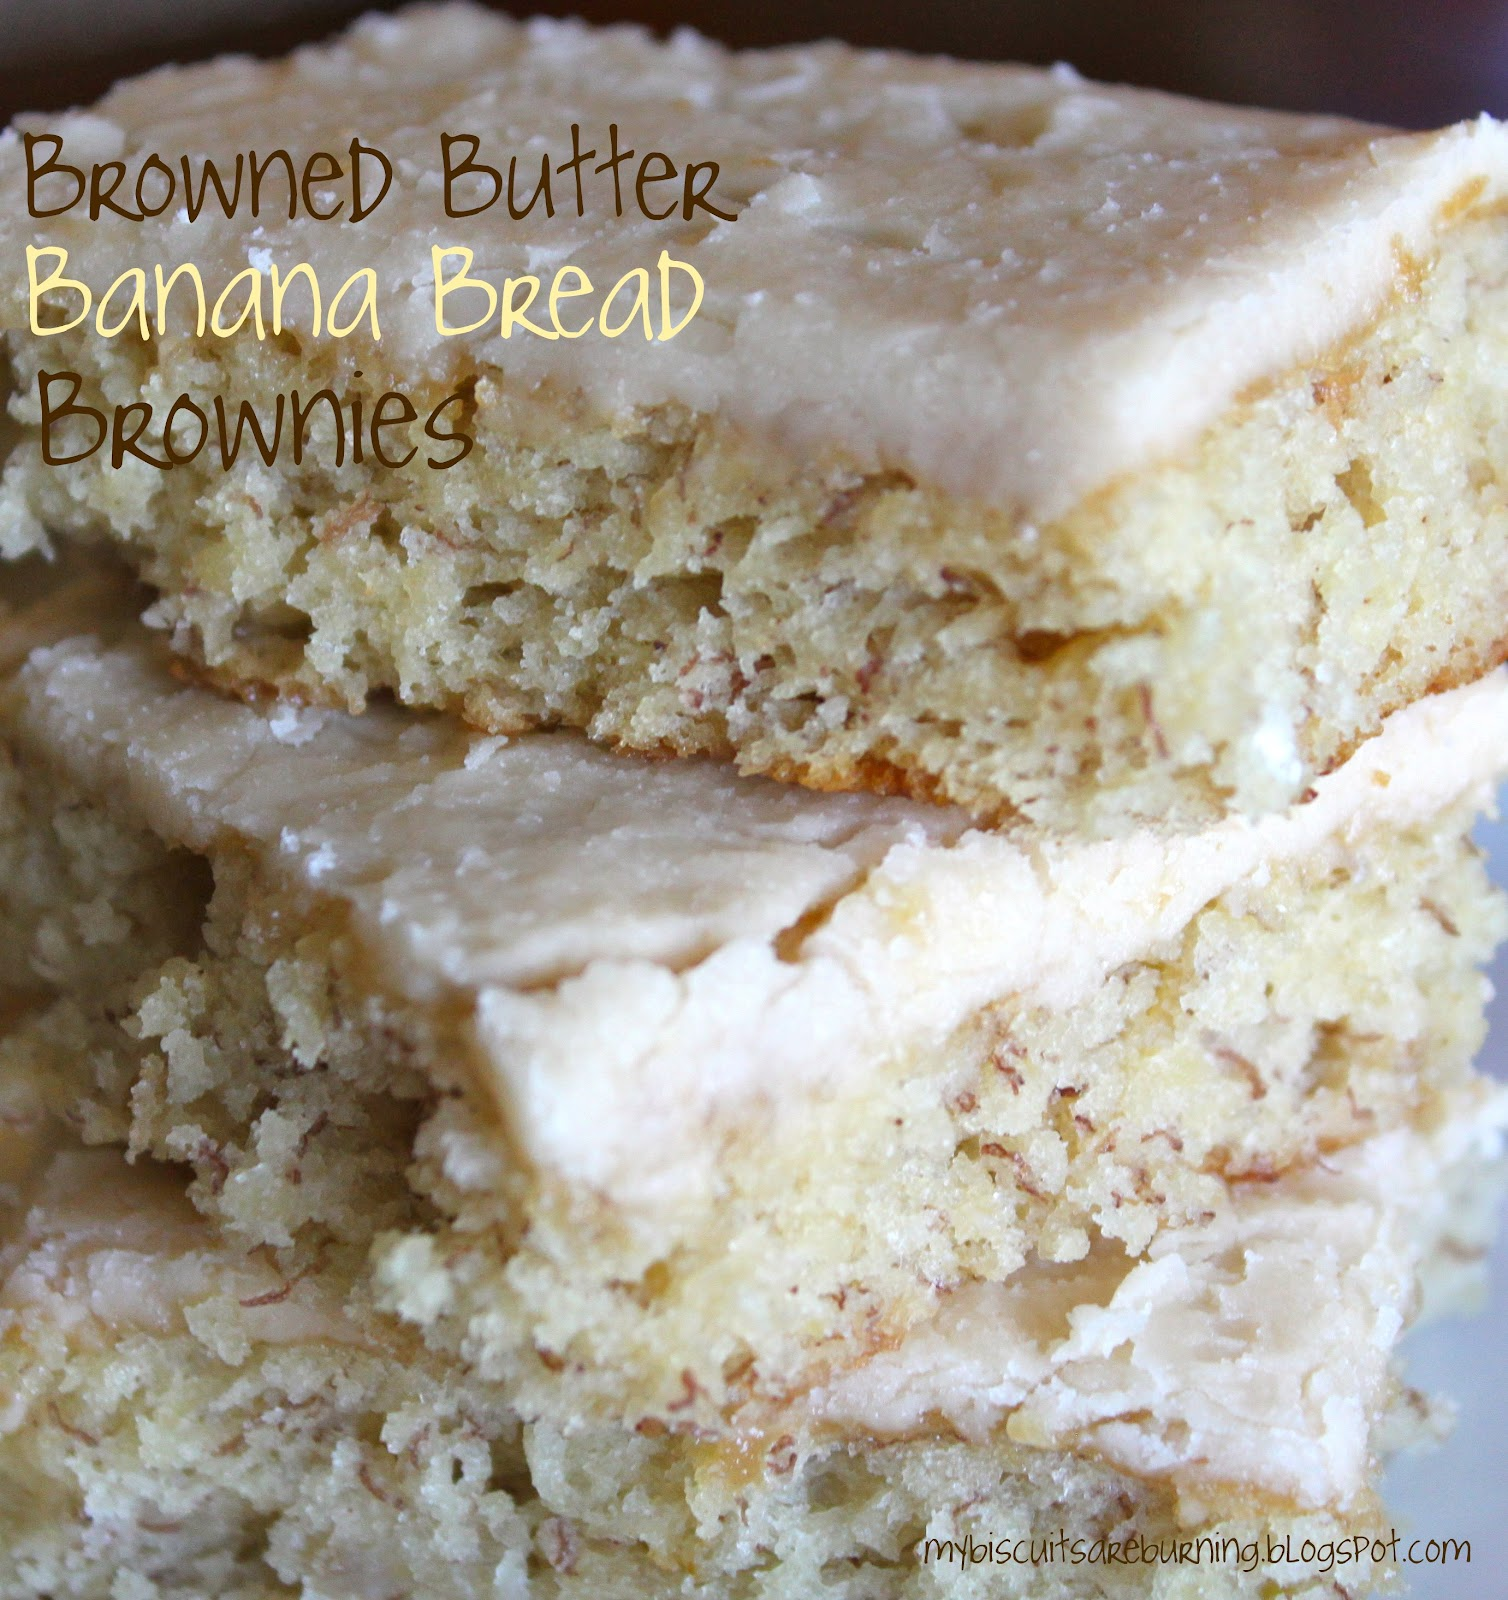 My Biscuits are Burning: Browned Butter Banana Bread Brownies